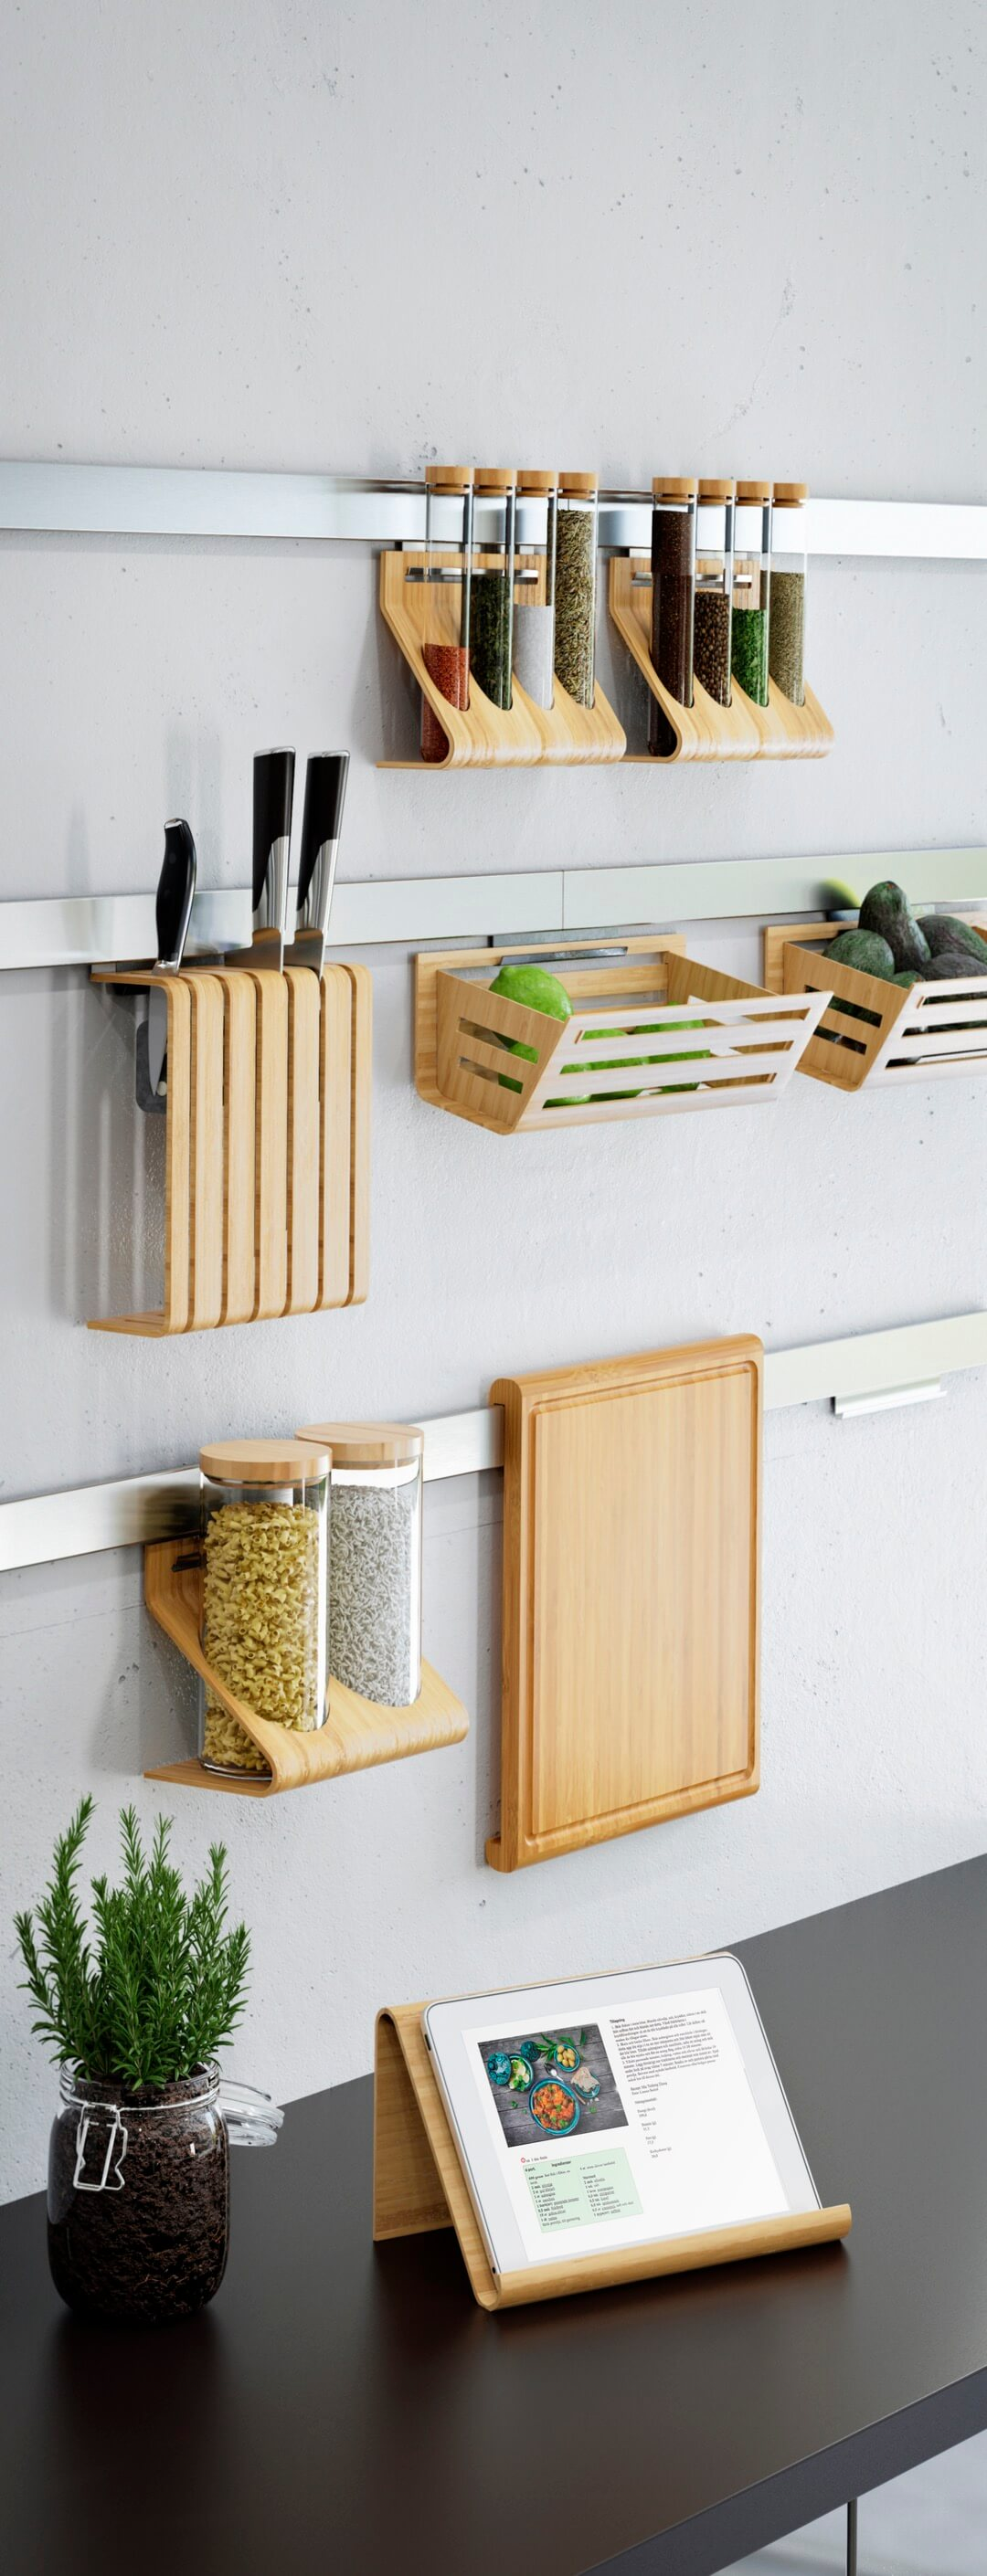 35 Best Small Kitchen Storage Organization Ideas and Designs ... Ideas For Small Kitchen Shelves on small color ideas, bar shelves ideas, small studio apartment kitchen idea, kitchen shelves decorating ideas, small corner shelves for kitchen, small kitchens with open shelves, bar kitchen interior design ideas, kitchen cabinets shelves ideas, open kitchen shelves ideas, sauna shelves ideas, small townhouse design ideas, corner kitchen shelves ideas, small pantry shelving ideas, storage shelves ideas, open kitchen cabinet ideas, open shelf kitchen design ideas, home shelves ideas, bedroom shelves ideas, diy kitchen storage ideas, country kitchen shelves ideas,